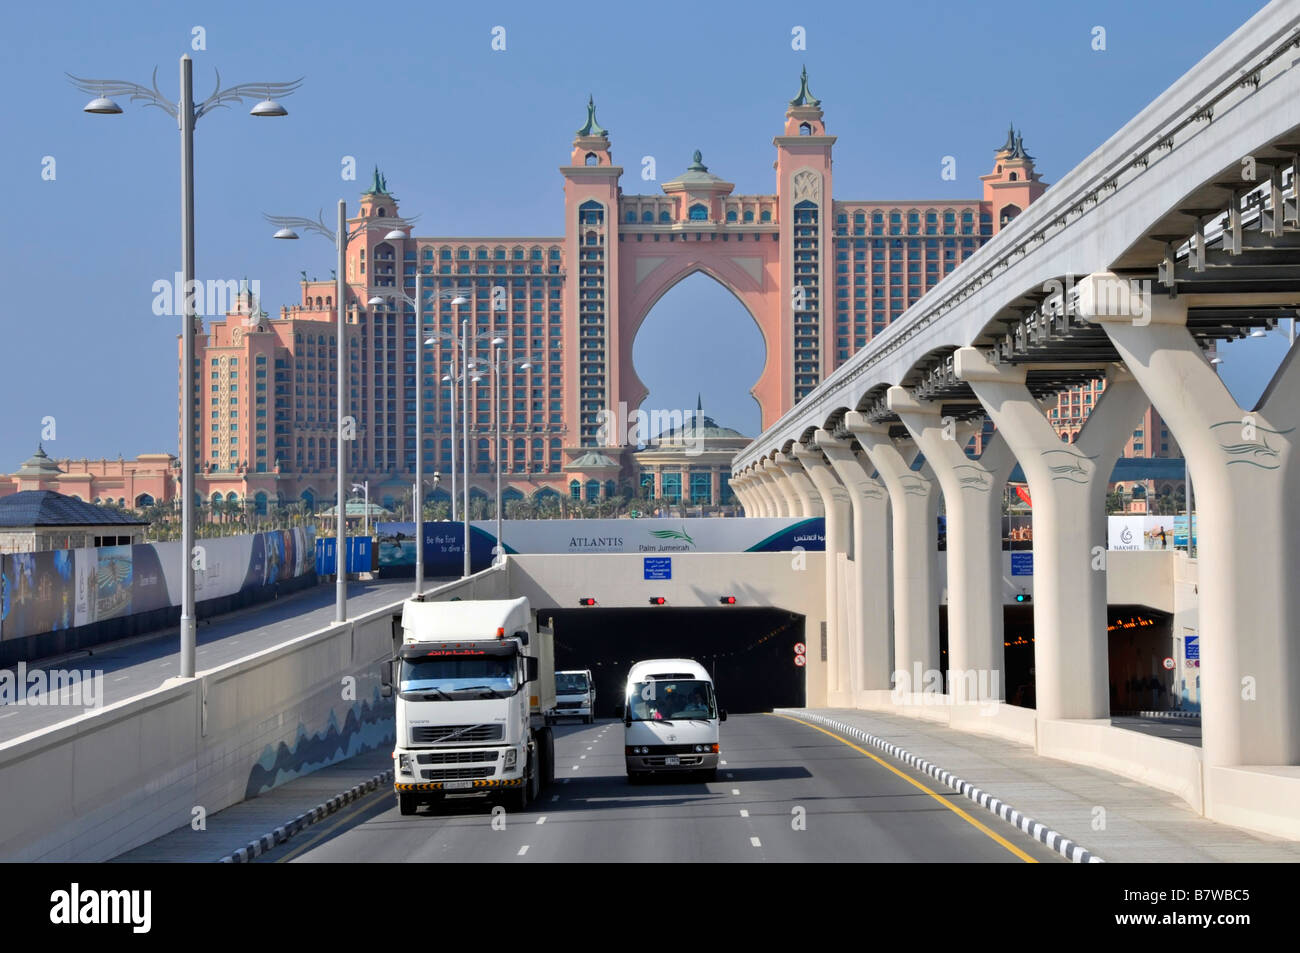 Dubai Atlantis Palm Hotel Resort Complex Road Monorail Overhead